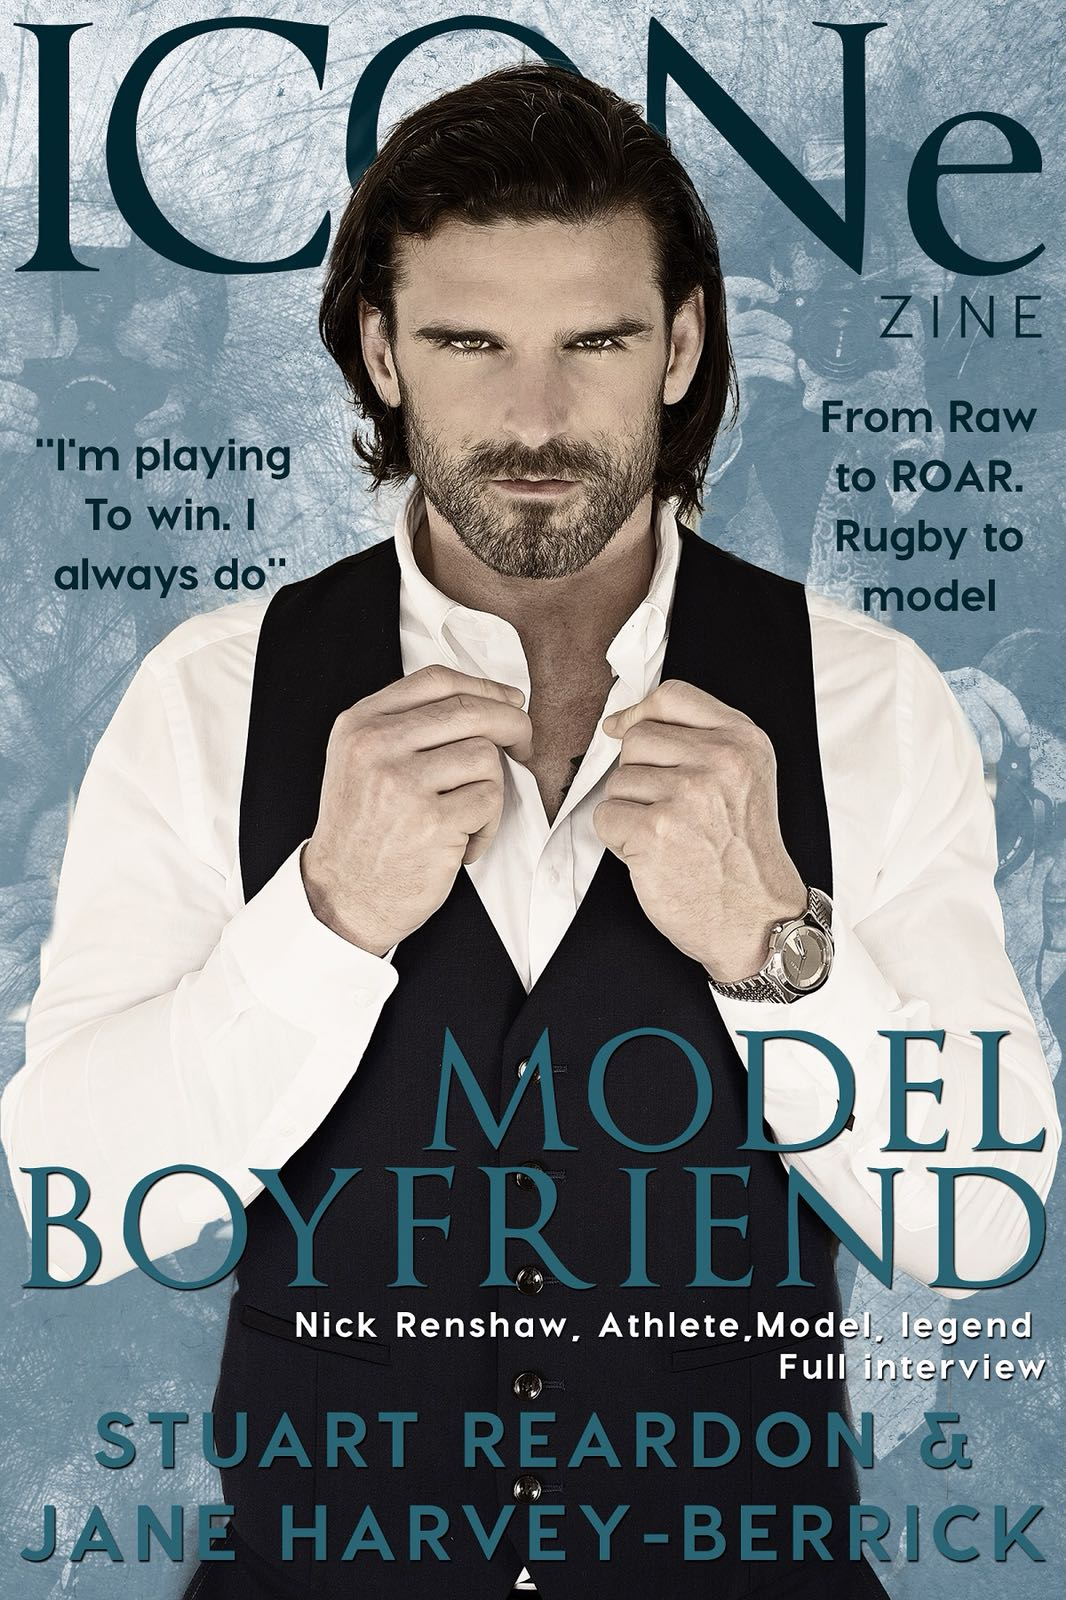 Model Boyfriend by Jane Harvey-Berrick, Stuart Reardon